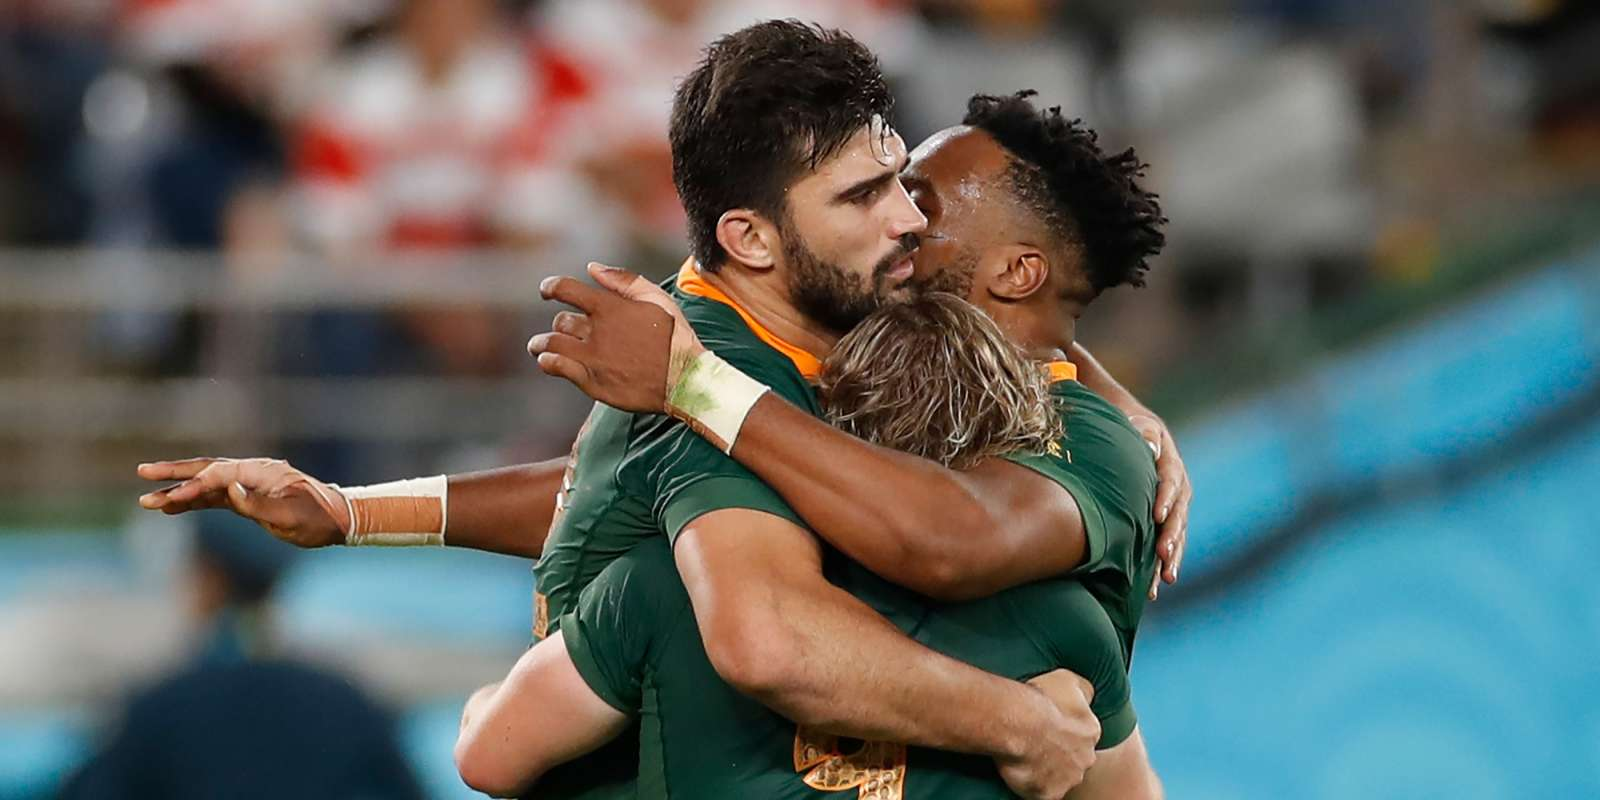 South Africa's scrum-half Faf de Klerk is congratulated by South Africa's centre Damian De Allende (L) and South Africa's centre Lukhanyo Am (R) after scoring a try during the Japan 2019 Rugby World Cup quarter-final match between Japan and South Africa at the Tokyo Stadium in Tokyo on October 20, 2019. / AFP / Odd Andersen